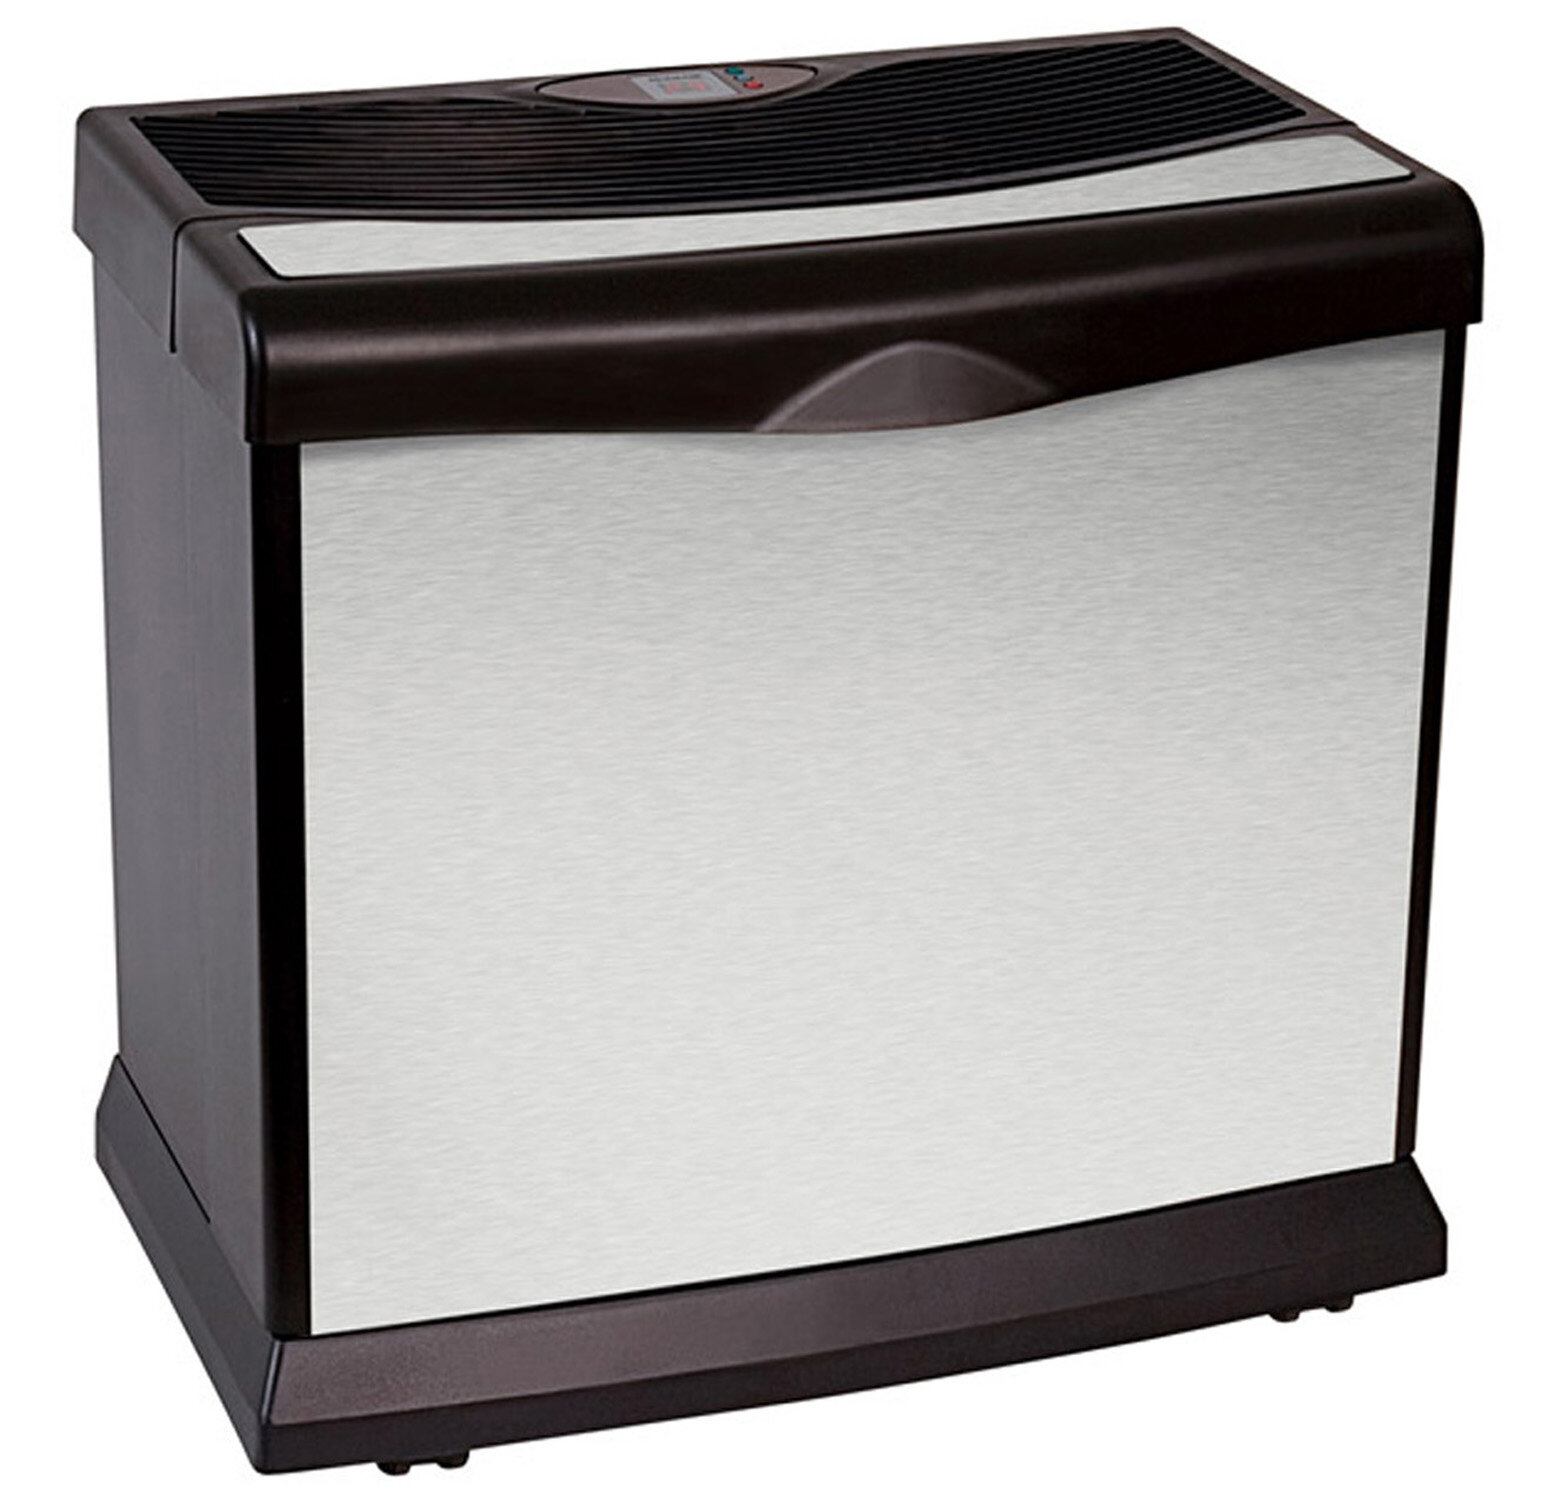 AIRCARE 5 Gal Evaporative Whole House Humidifier